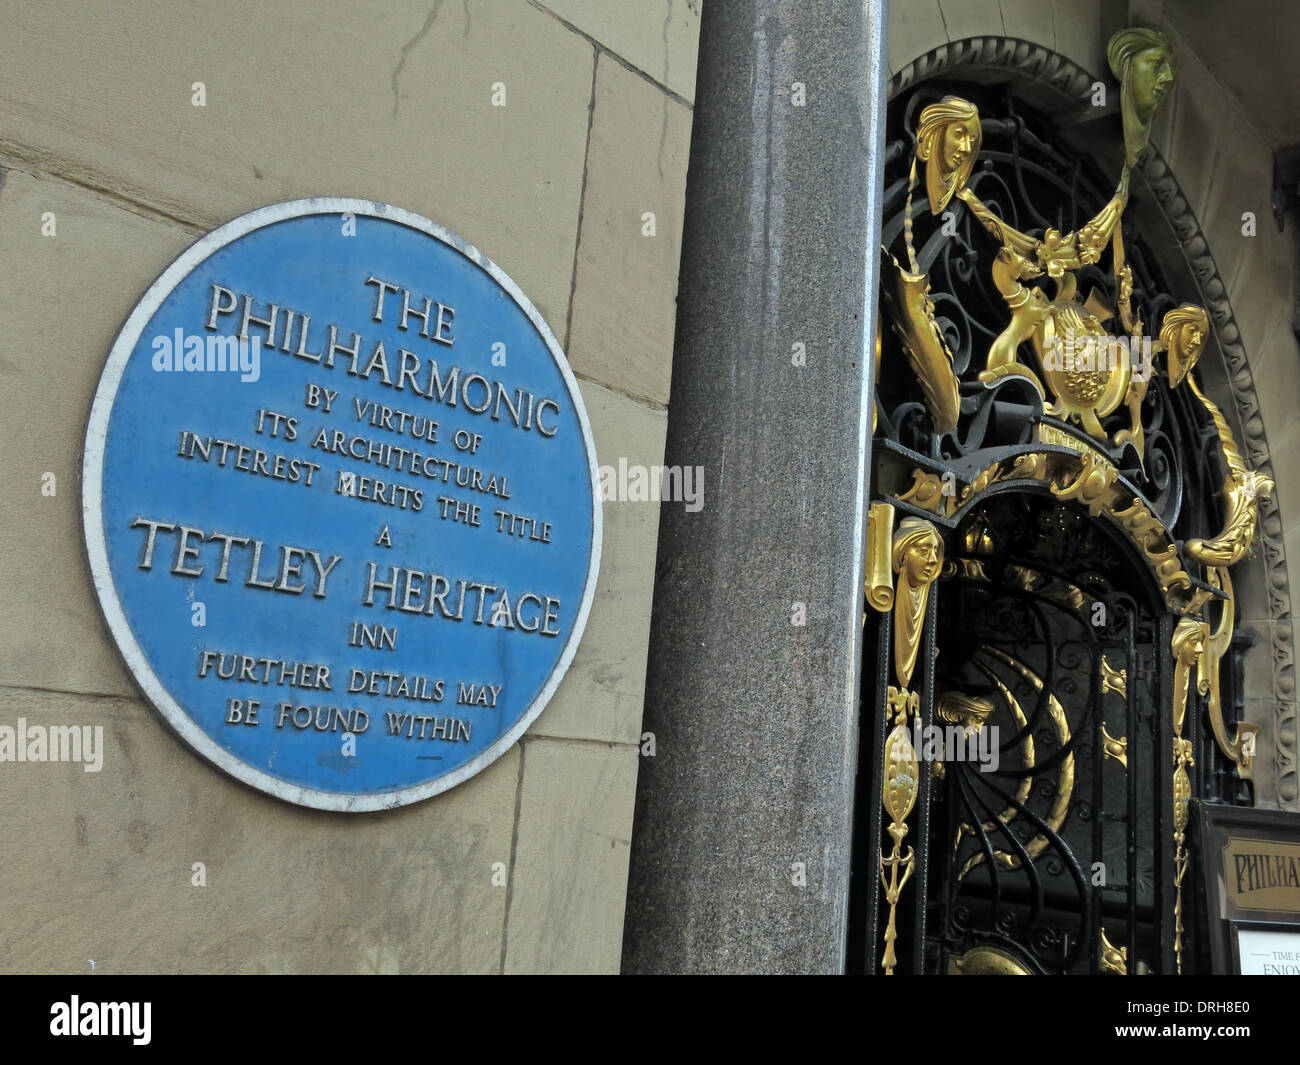 GB,great,britain,hope,st,street,tourist,trail,tourism,famous,pubs,bars,pub,bar,artdeco,art,deco,victorian,Cain,Cains,Tetley,GB,Great,Britain,British,CAMRA,real,ale,The,Phil,grade,2,gradeii,listed,building,exuberant,free,style,of,architecture,in,Gold,Liverpool,maritime,England,UK,blue,heritage,plaque,gotonysmith,Art,Nouveau,hardman,st,street,most,richly,decorated,of,Liverpools,Victorian,public,houses,Gem,gems,Pollard,and,Pevsner,in the Buildings of England series,state,that,it,is,the,most,richly,decorated,of,Liverpools,Victorian,public,houses,and that,.,The,Grade,II*,listing,means,that,it,is,included,among,. Pye describes it as one of Liverpools architectural gems,heritage,Liverpools,scouse,Merseyside,L7 7EE,L77EE,bar,bars,boozer,bar,bars,boozer,pub,pubs,bars,bar,hotpixuk,@hotpixuk,@hotpixuk,Phillharmonic,Philharmonic pub liverpool pub,Liverpool Pubs,pubs,bars,bar,history,historic,it is of exceptional quality in national terms,particularly important buildings of more than special interest,Buy Pictures of,Buy Images Of,Liverpool Pub,Liverpool Pubs,Liverpool Pub,Liverpool Pubs